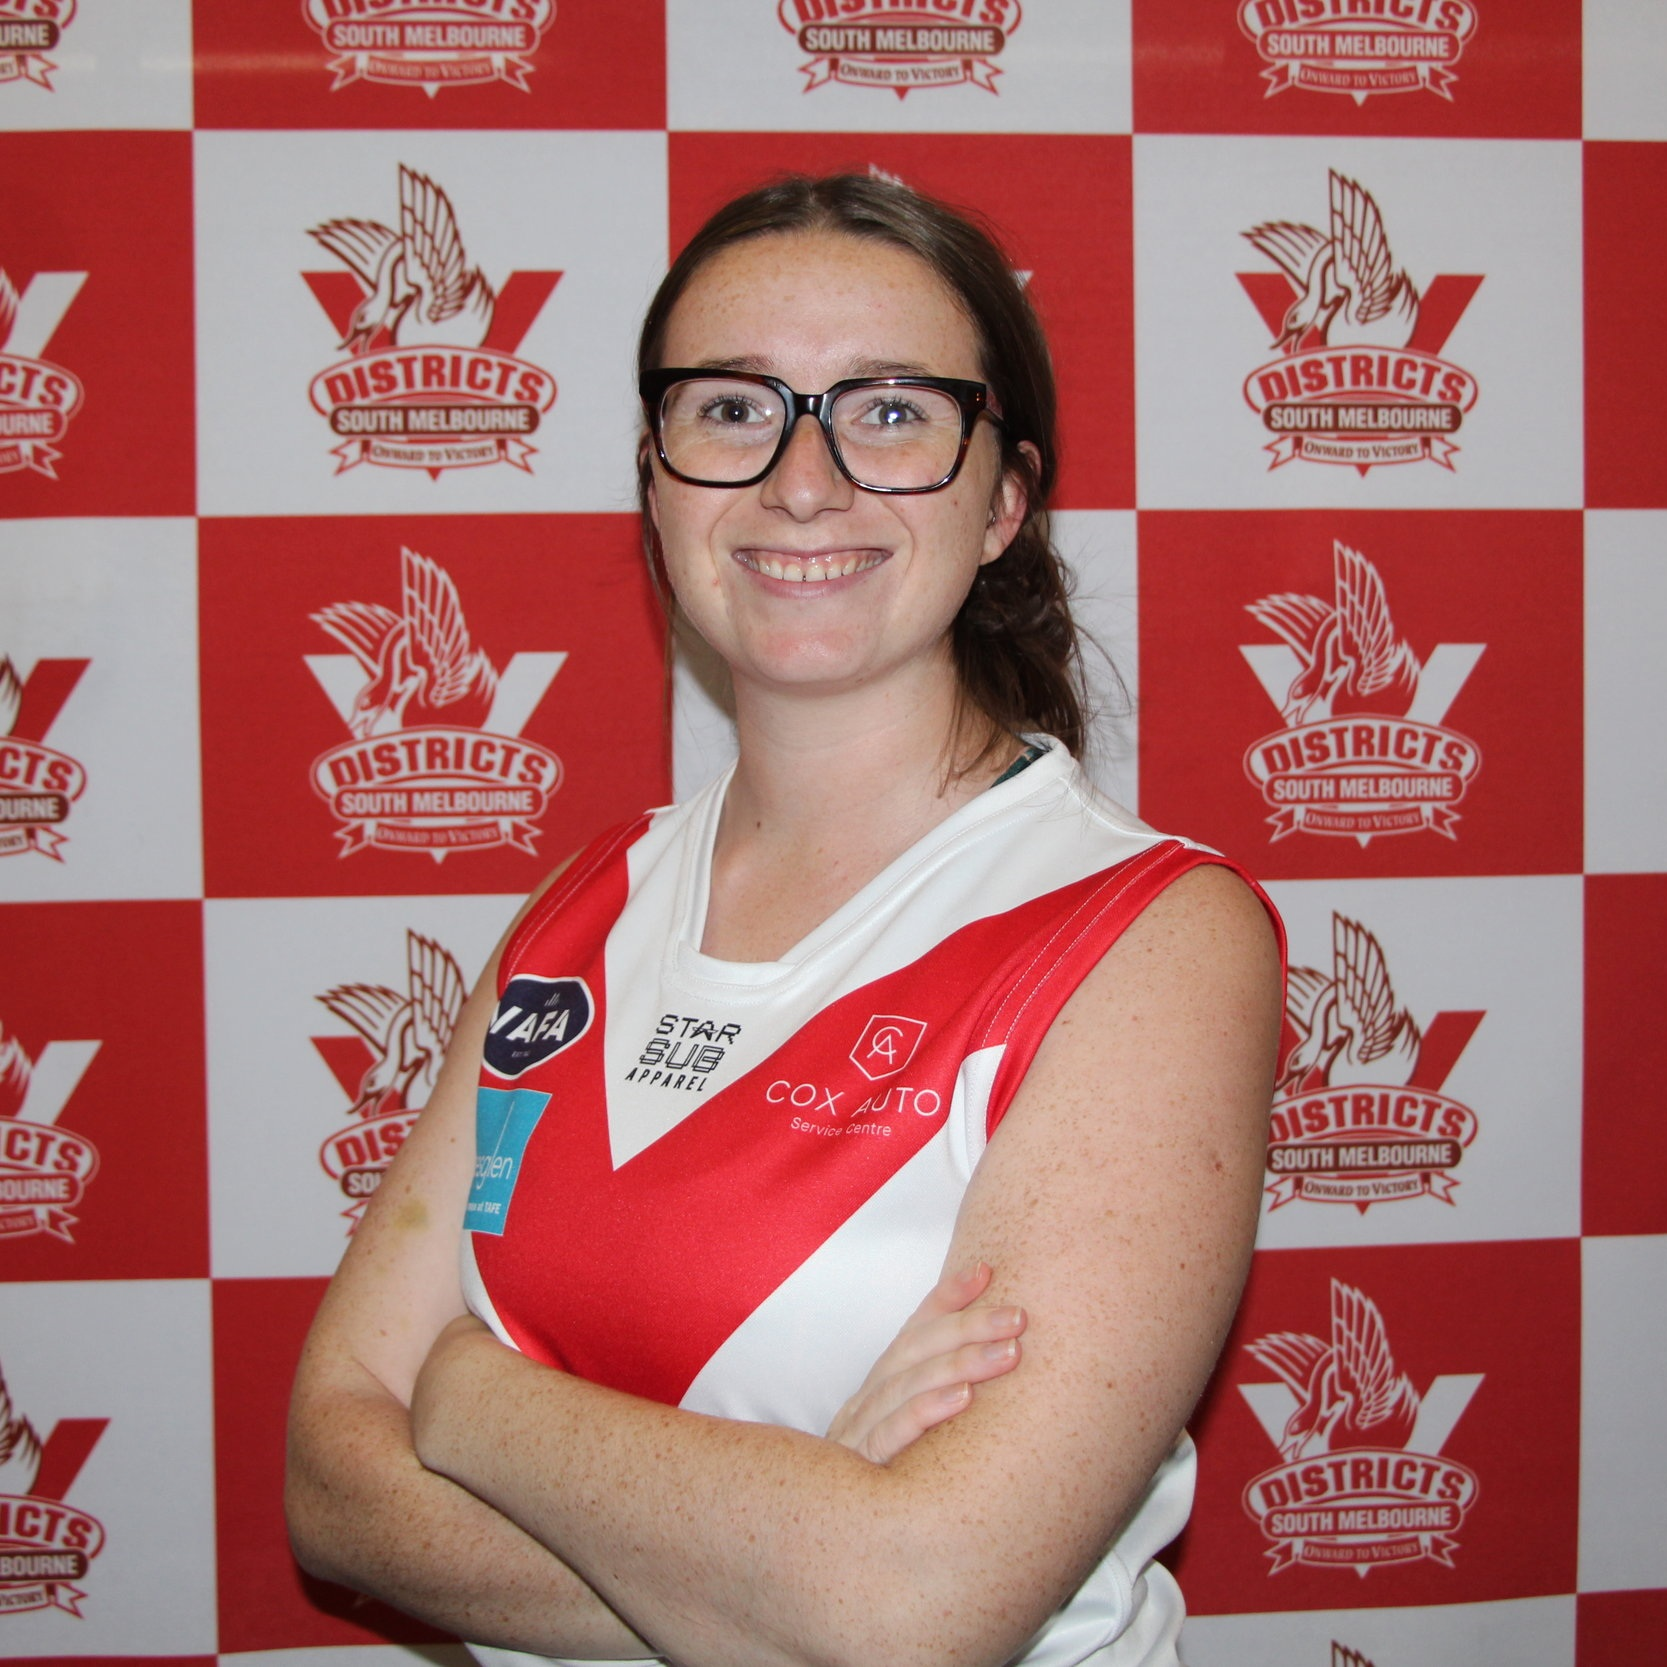 Clare  2019 sees a new face in the #47 jumper in the shape of our Scottish unicorn Clare! She is a graduate of the SMDFC skills academy at the end of 2018 and has taken those skills into the Half Forward/ Ruck positions with enthusiasm. Clare is also a netballer with high accolades of being Premiers in '06, '07' and '08! Away from sport Clare has a slightly blemished past… cops got called to her house for reported mooning at cars on the street, they arrived to find the culprit- an 8 year old Clare. Let's hope she doesn't adopt that as a goal celebration!